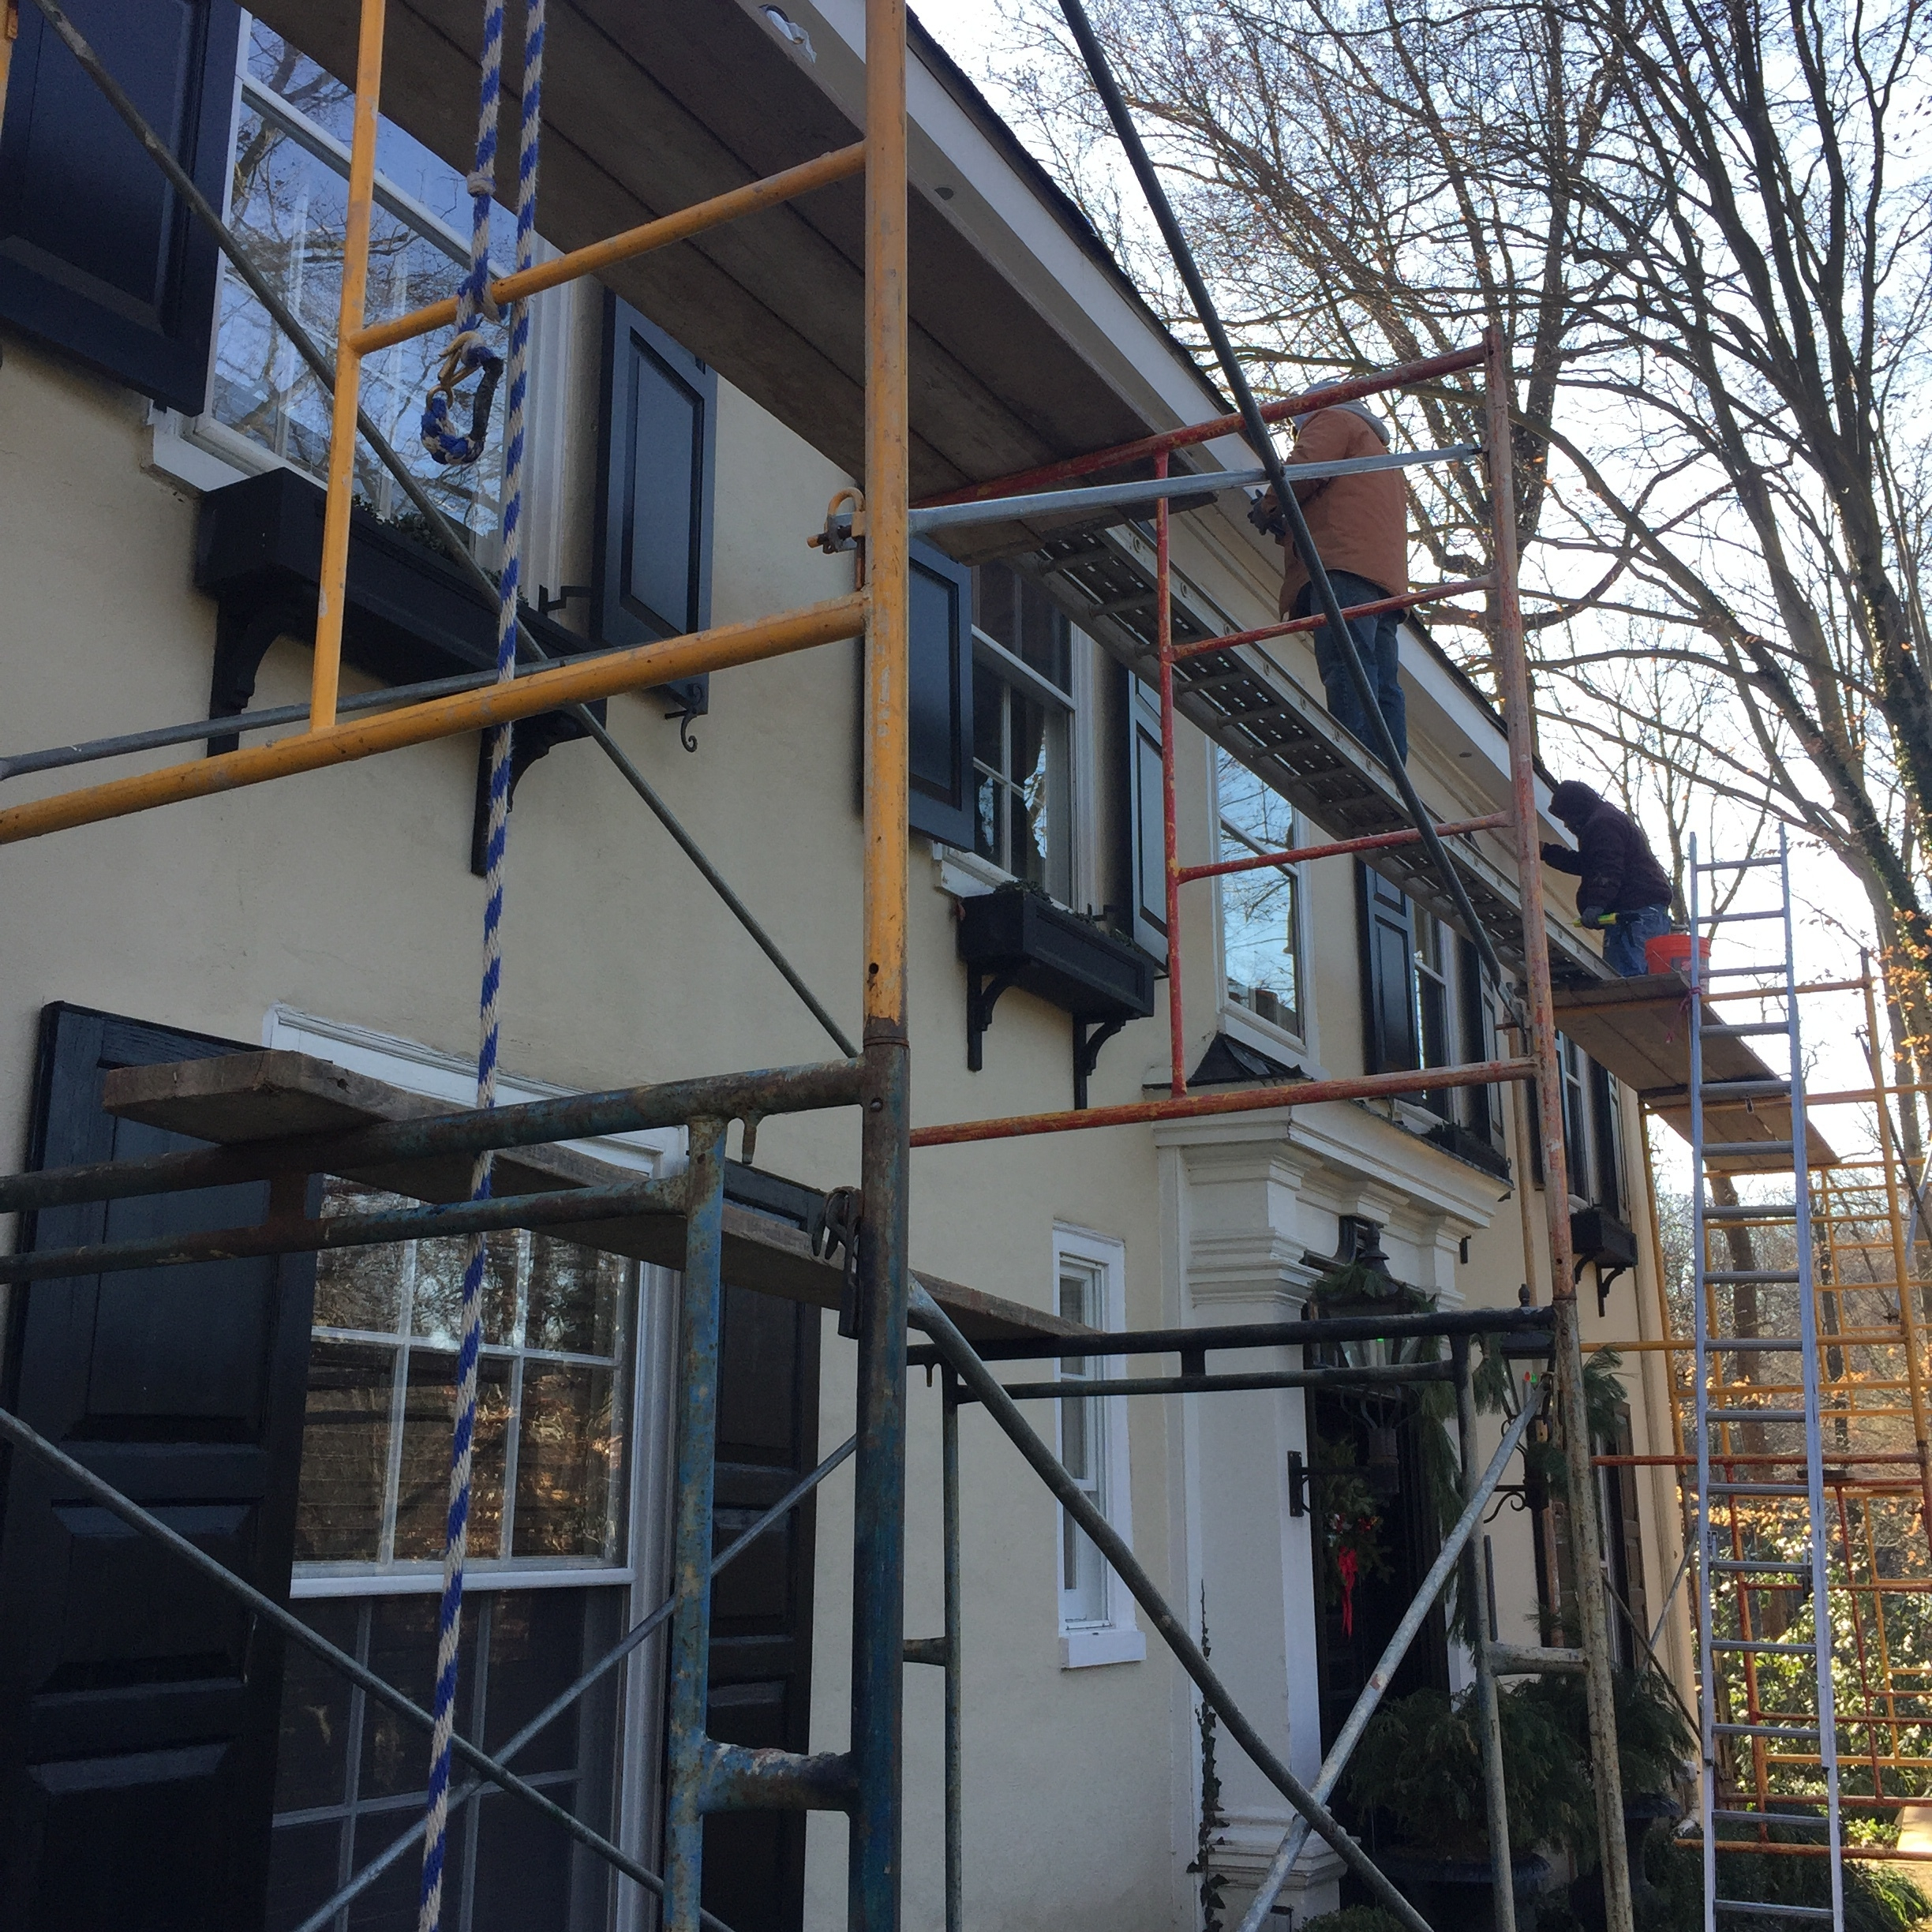 Project site photos of the scaffolding we erected to rebuild the rotted fascia and soffits of this historic Haverford farmhouse. It was 0 °F that day (probably less with the gusts of residual high-pressure arctic air that had followed the early 2018 bombogenesis).